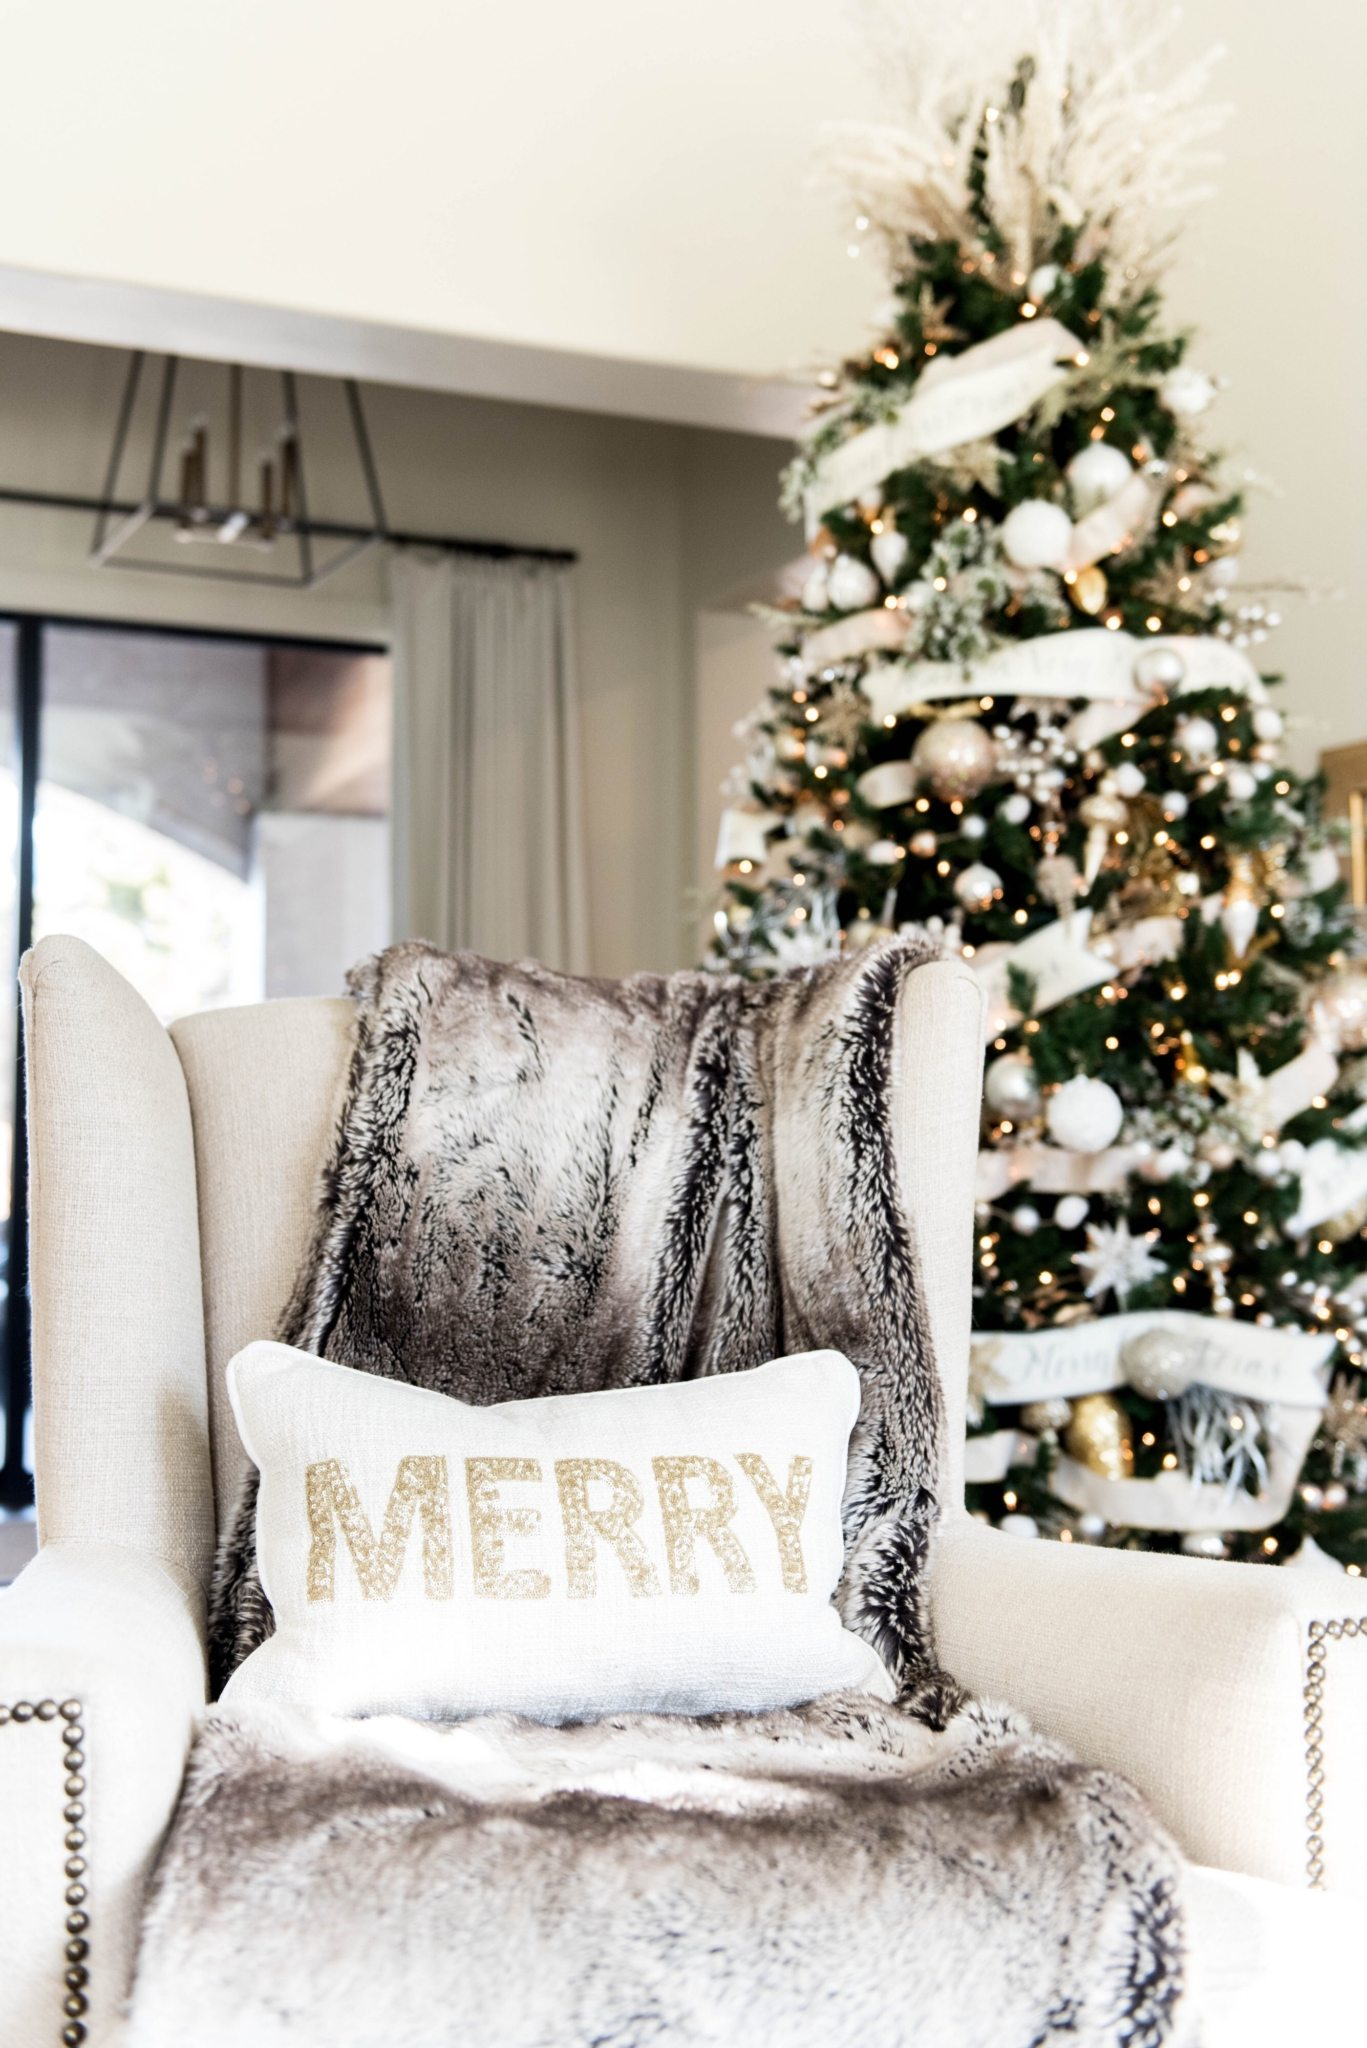 20/05/2021· pick a few bold colors to focus on (like green and purple) and a couple of easy neutrals (like white and beige) to balance the brighter choices. All White Christmas Decor Ideas That Don't Look Boring At All